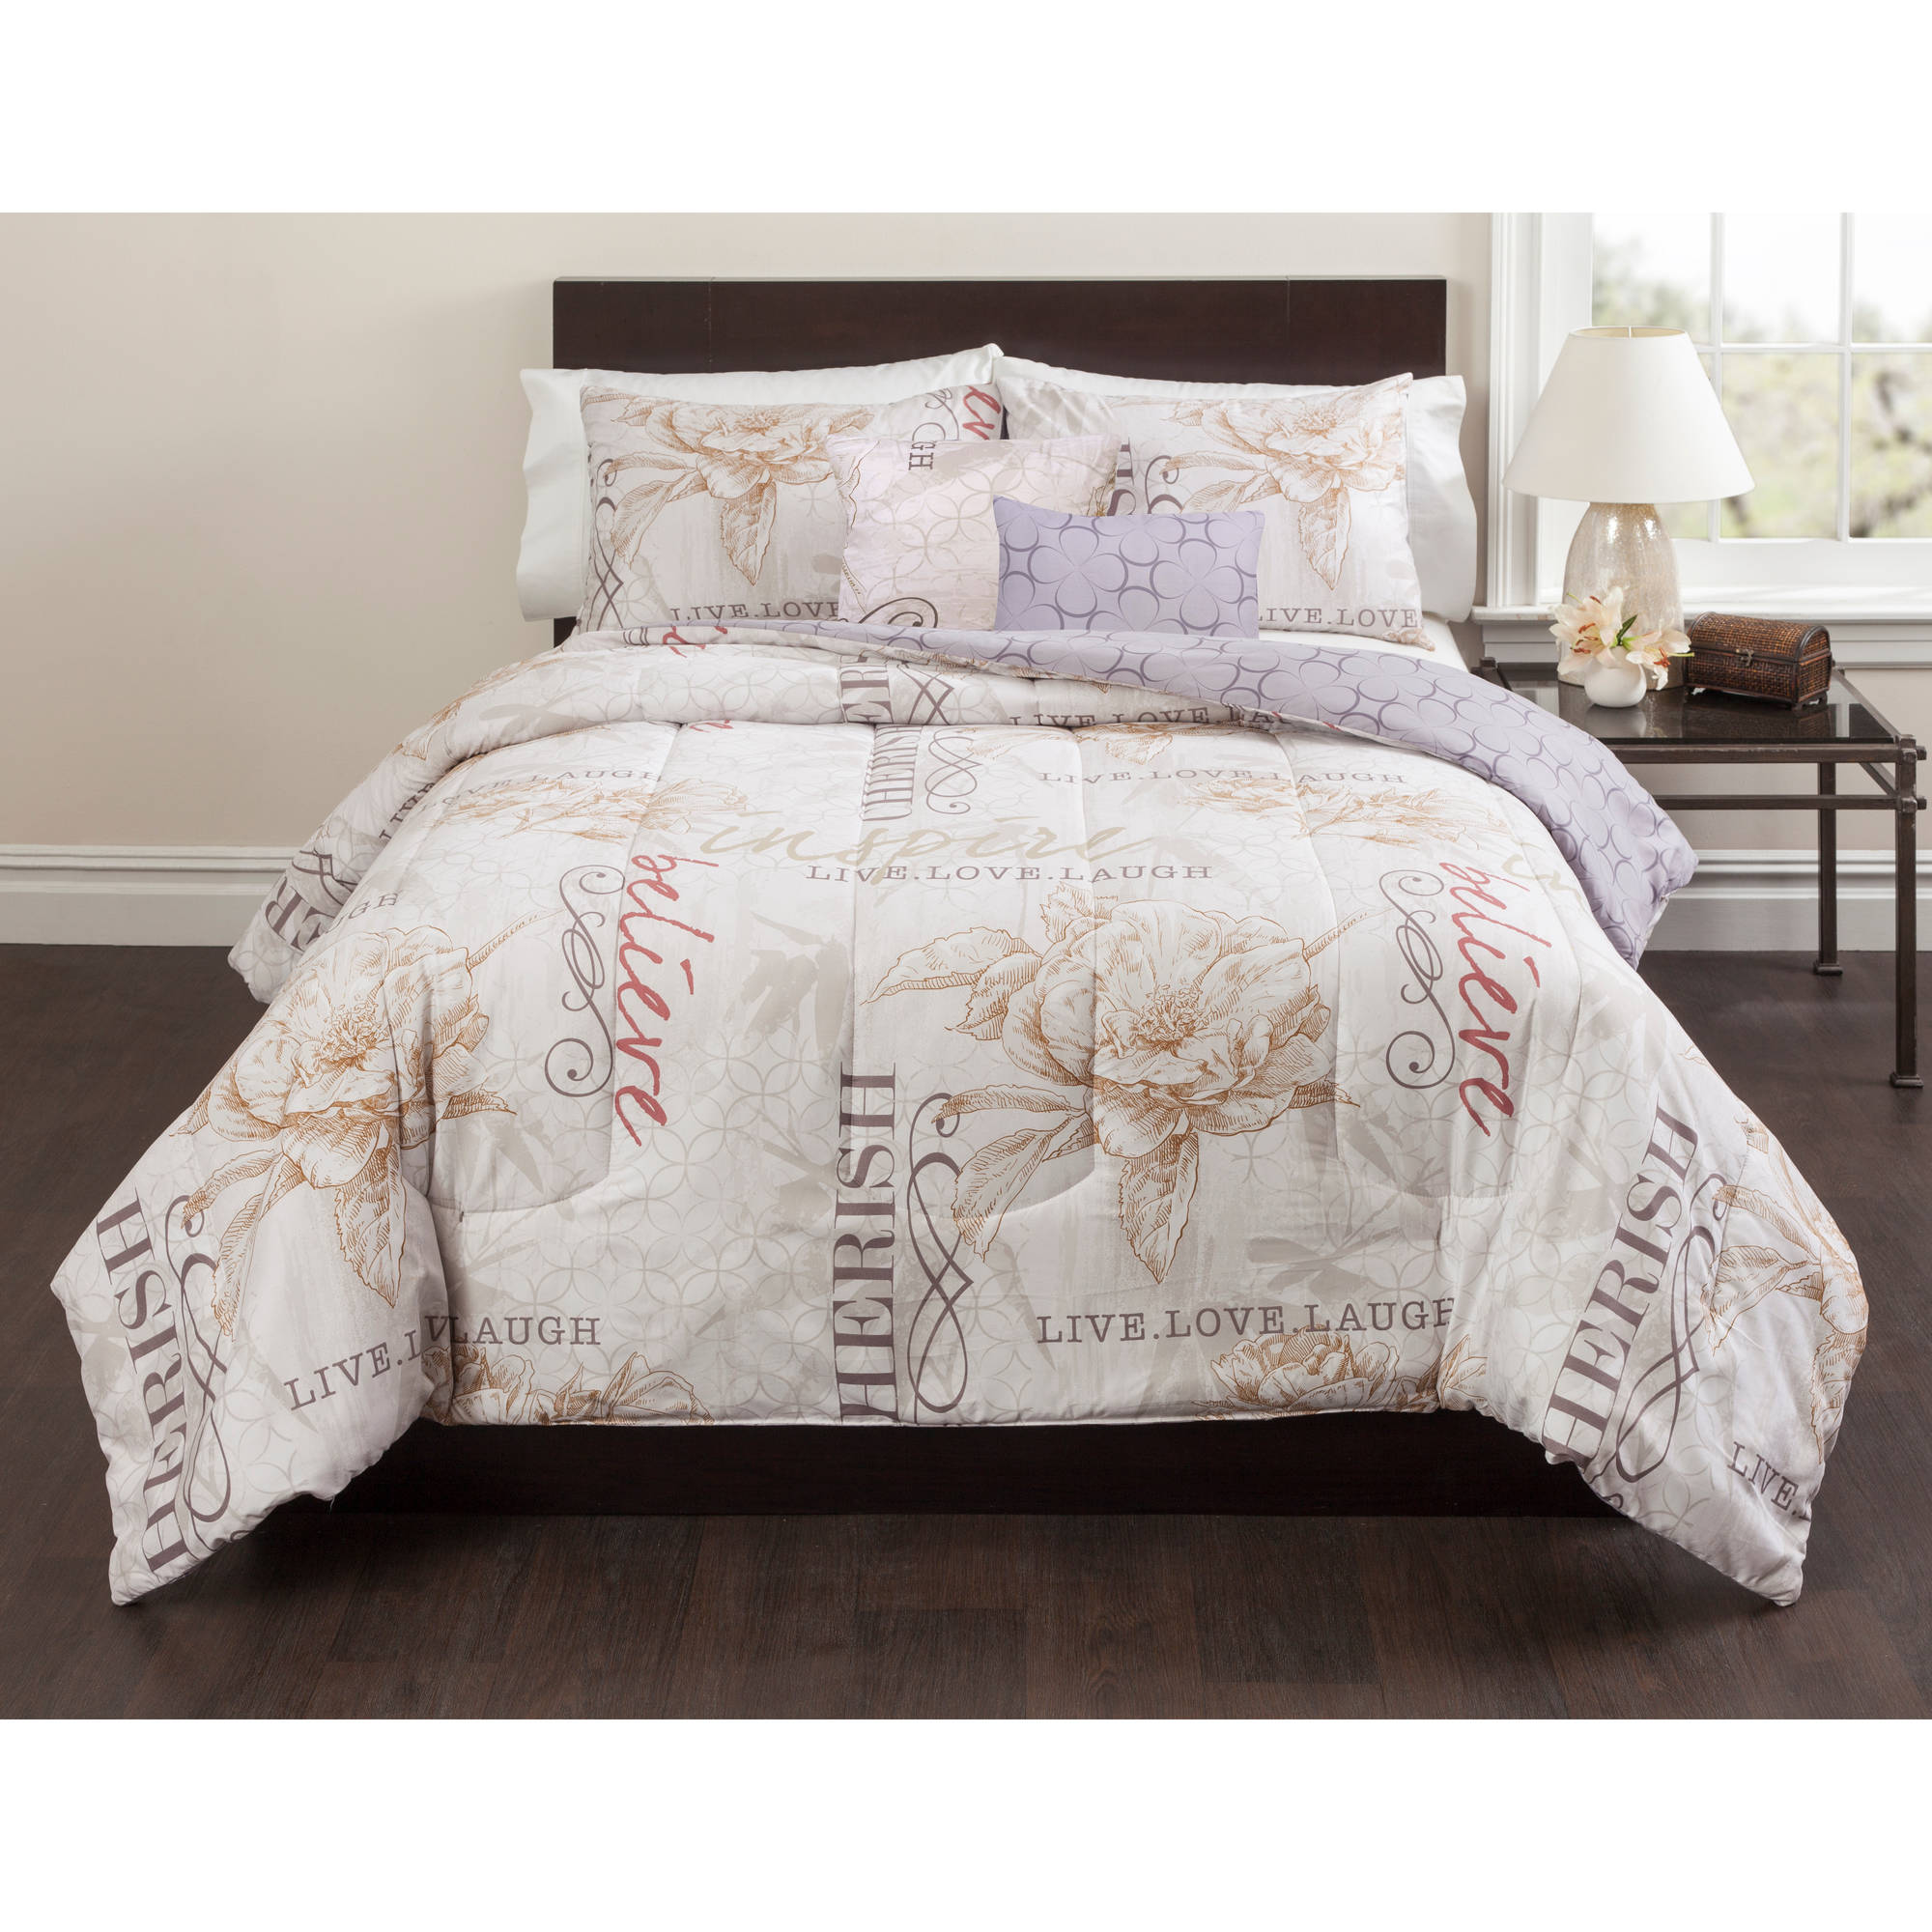 Casa Live, Laugh, Love 5-Piece Bedding Comforter Set by Idea Nuova Inc